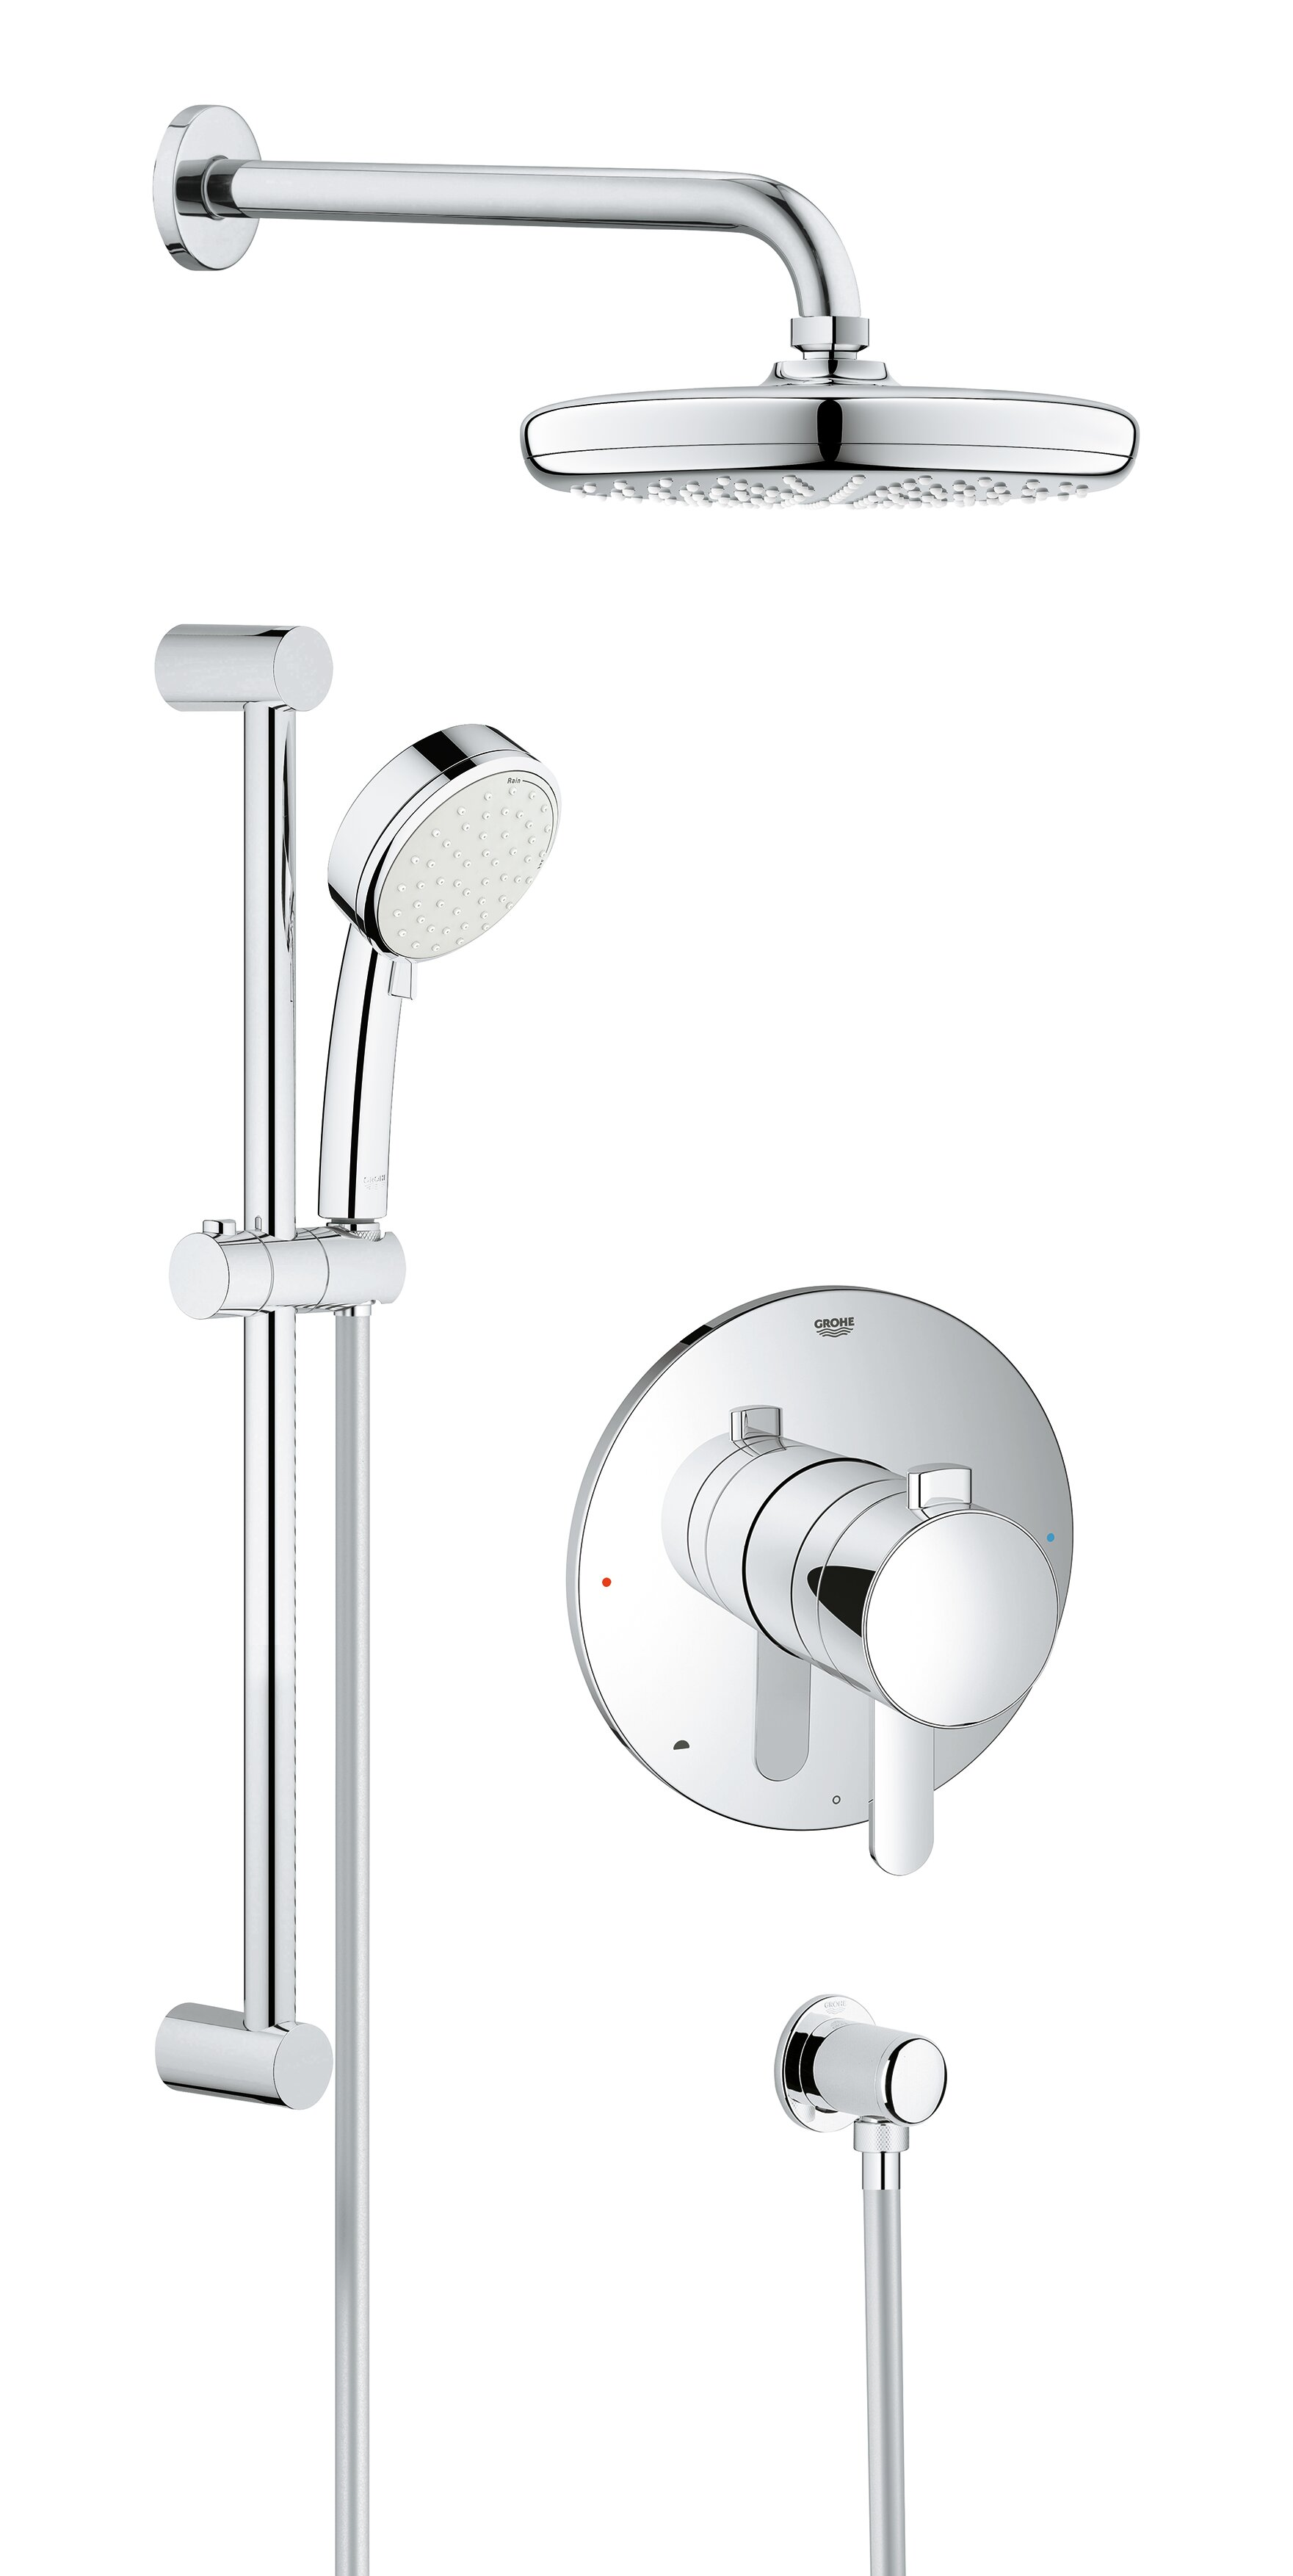 Charmant Grohe Cosmopolitan Pressure Balanced Dual Function Adjustable Complete  Shower System With SpeedClean Technology | Wayfair